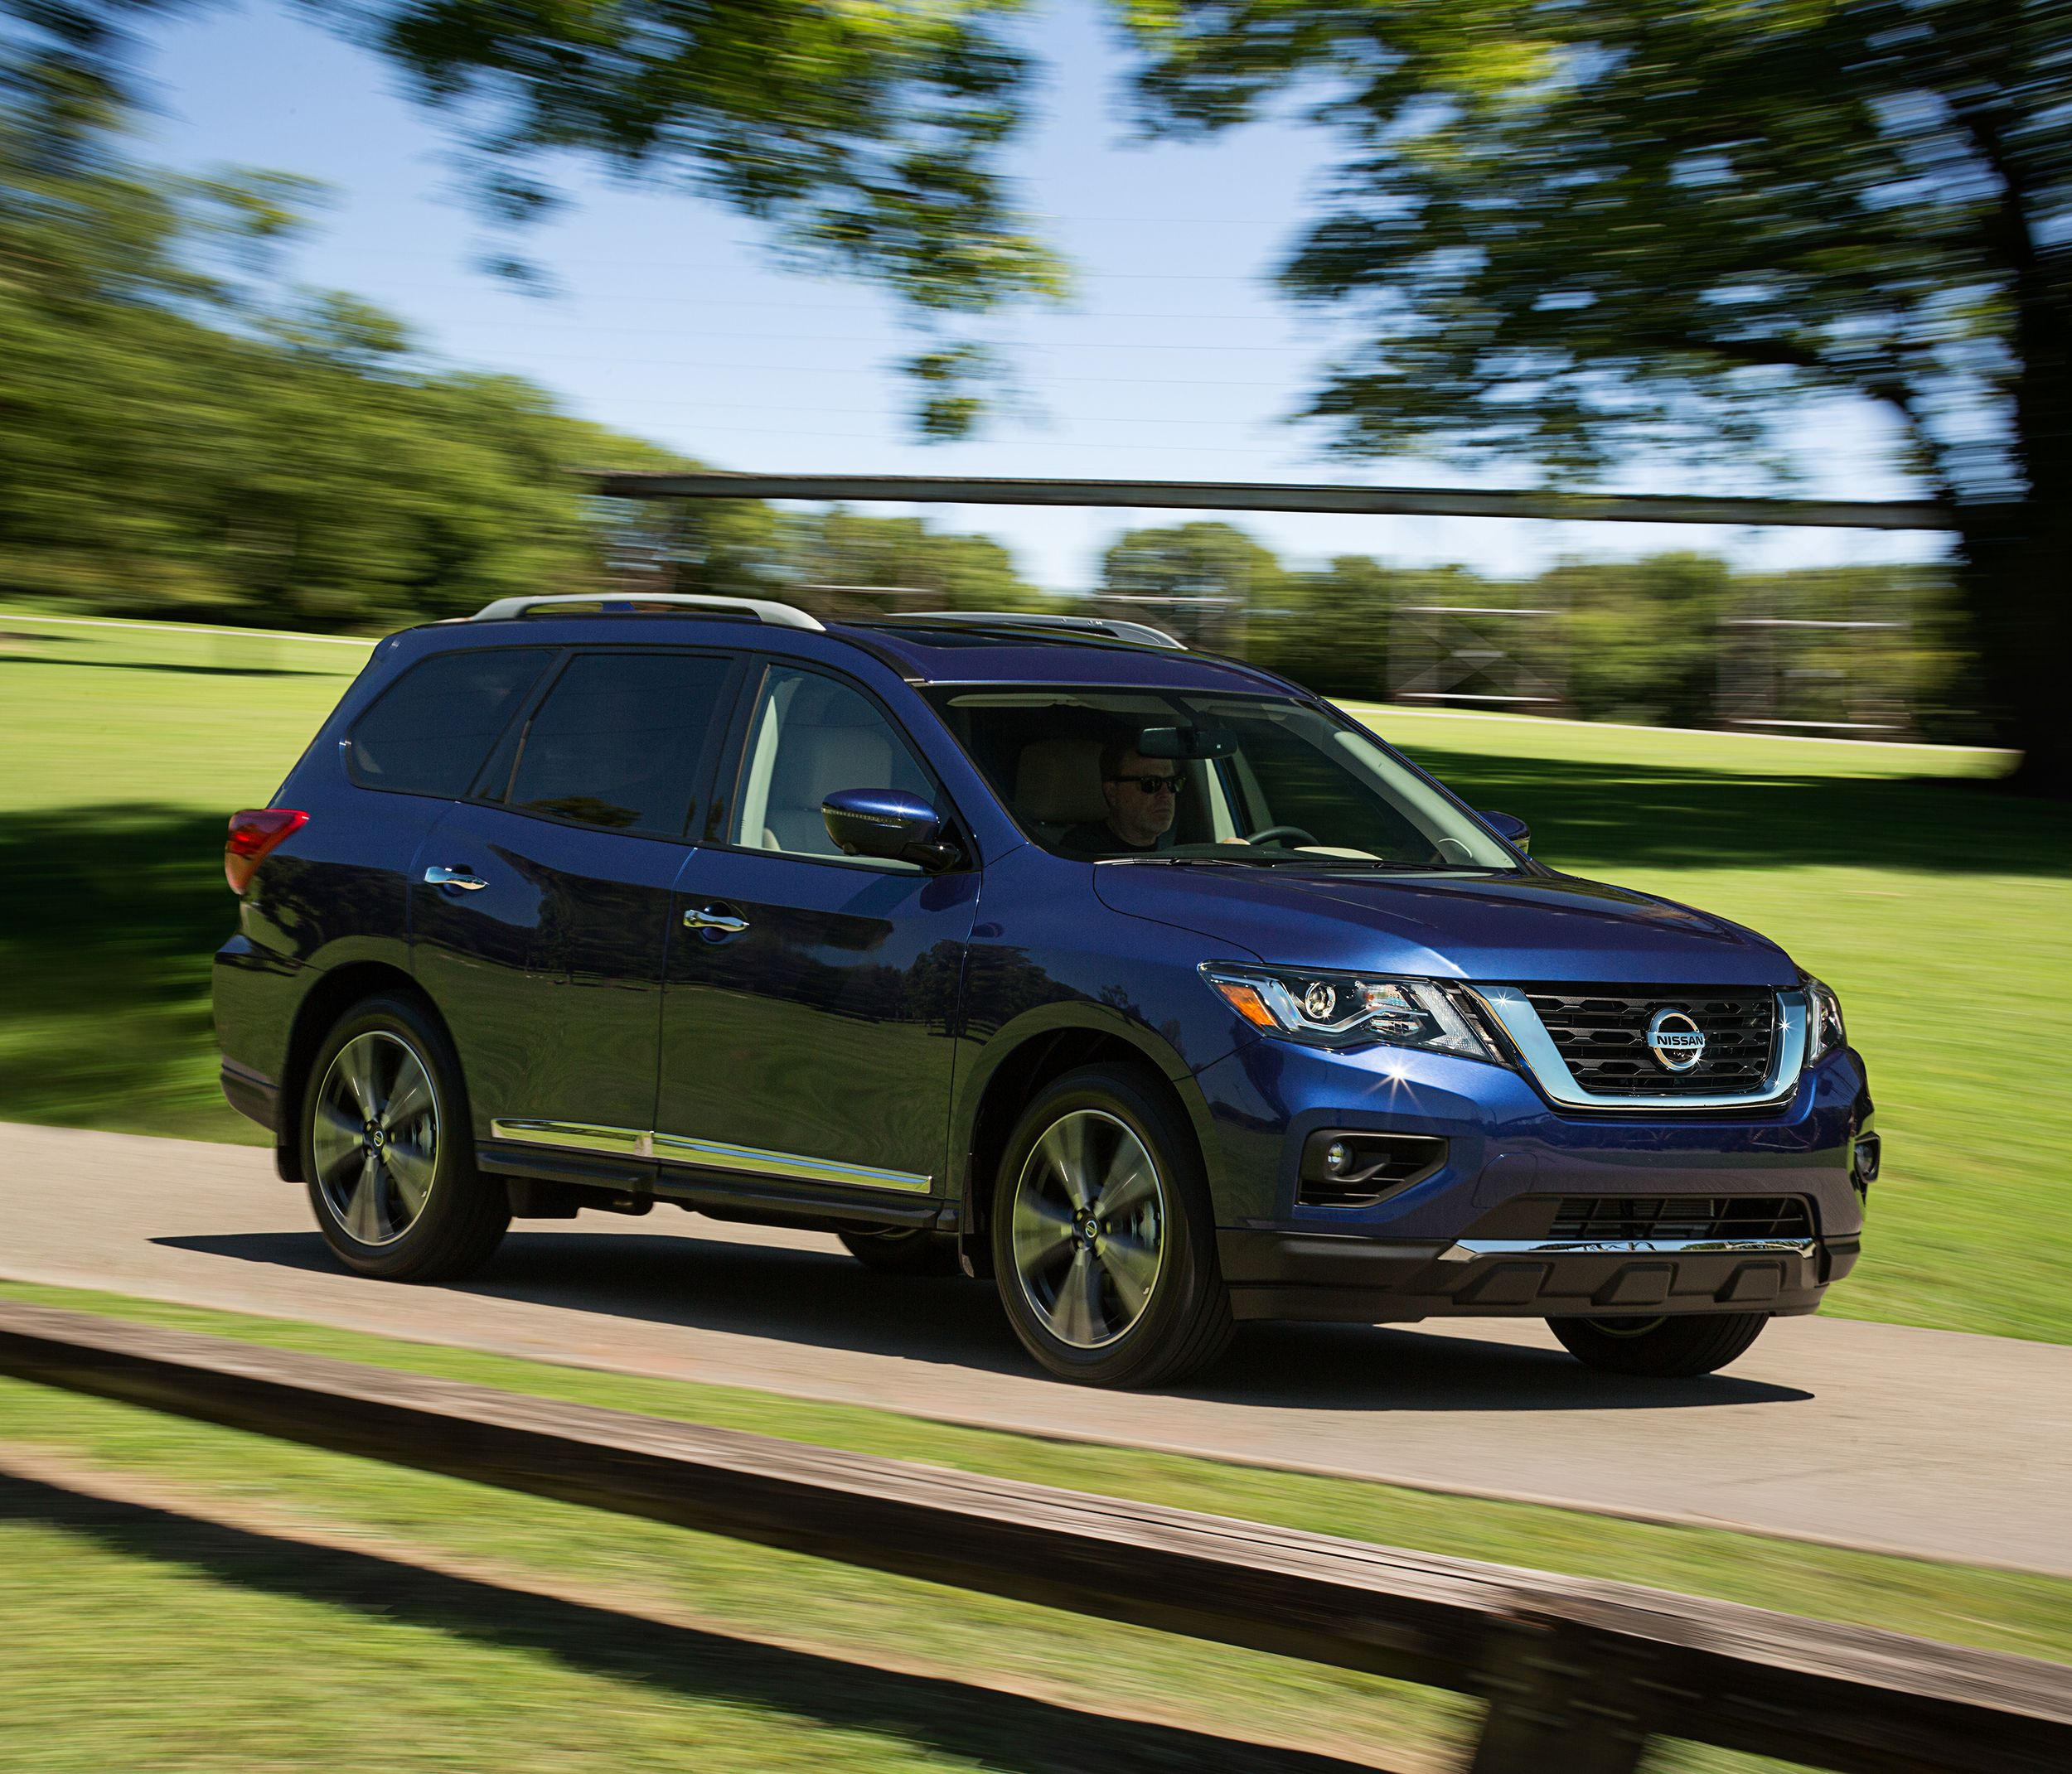 Nissan Pathfinder Prices Go Up A Bit For 2020 Nissan Pathfinder Nissan Pathfinder Reviews Nissan